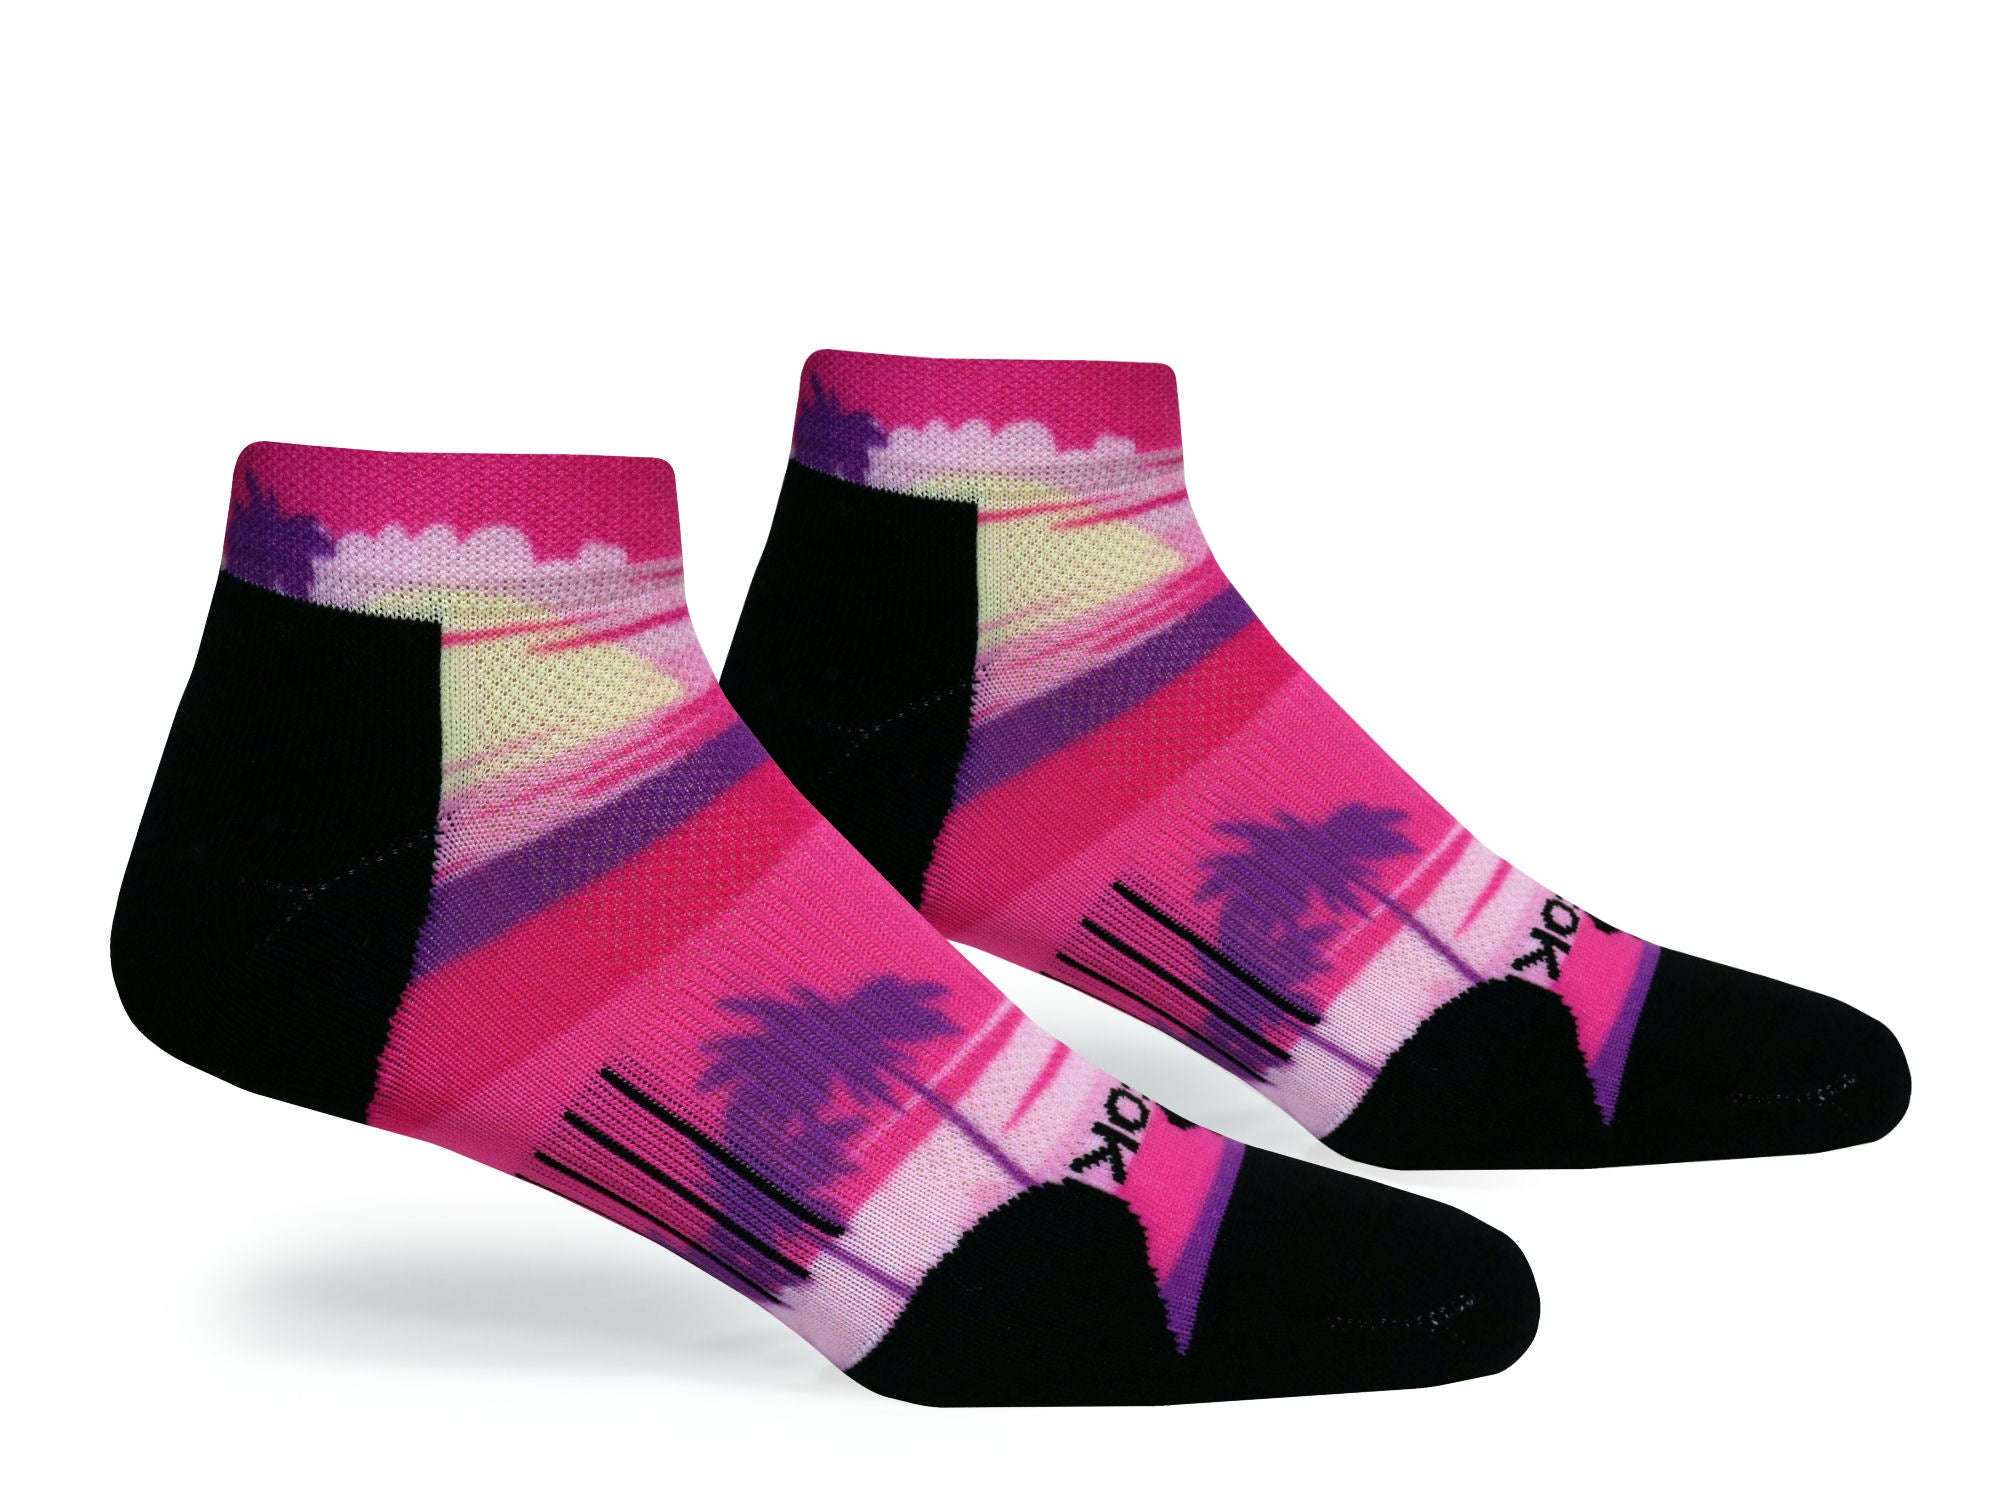 F360 Active Low Cut Sunset Drive Pink (1 Pair Pack)